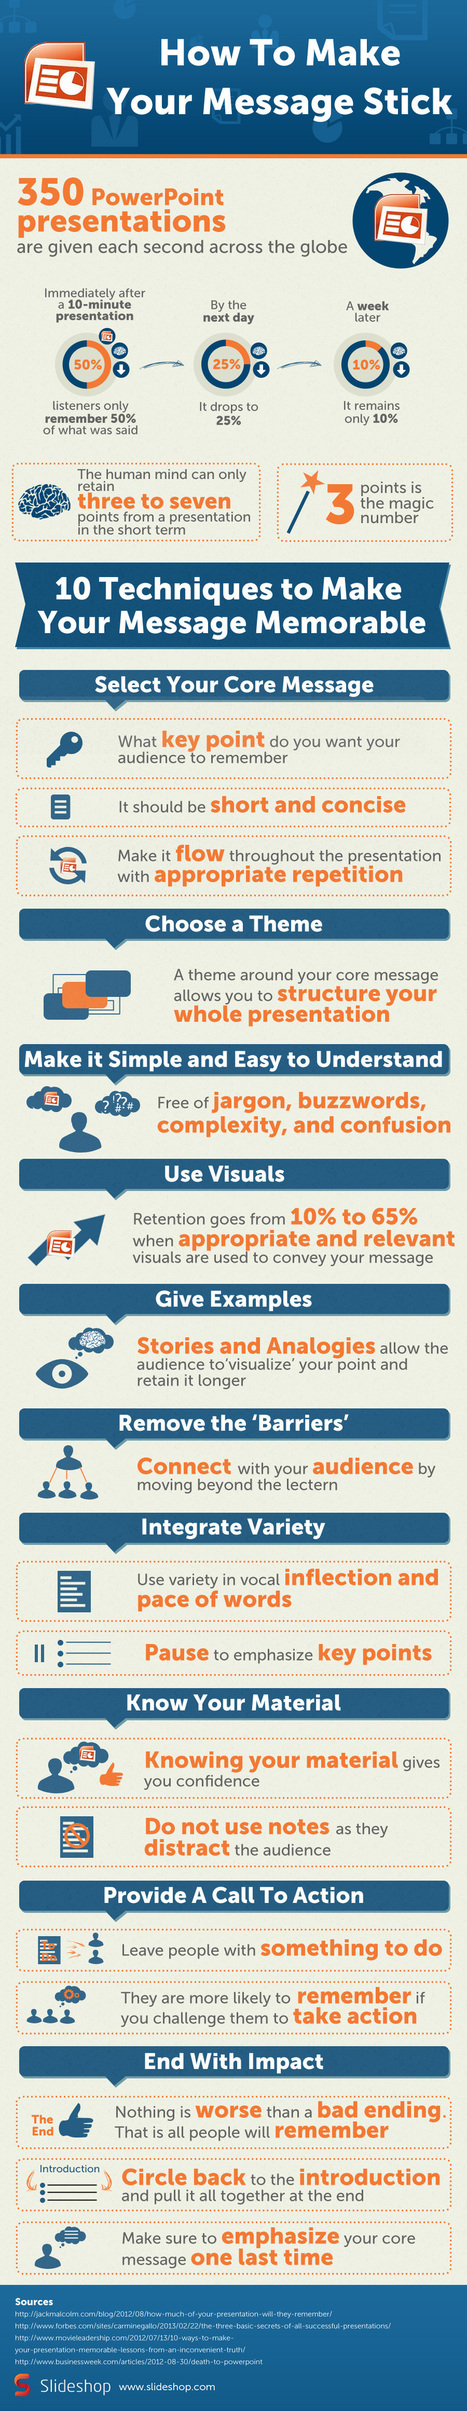 Presentations Infographic: Making Your Message Stick | Chummaa...therinjuppome! | Scoop.it